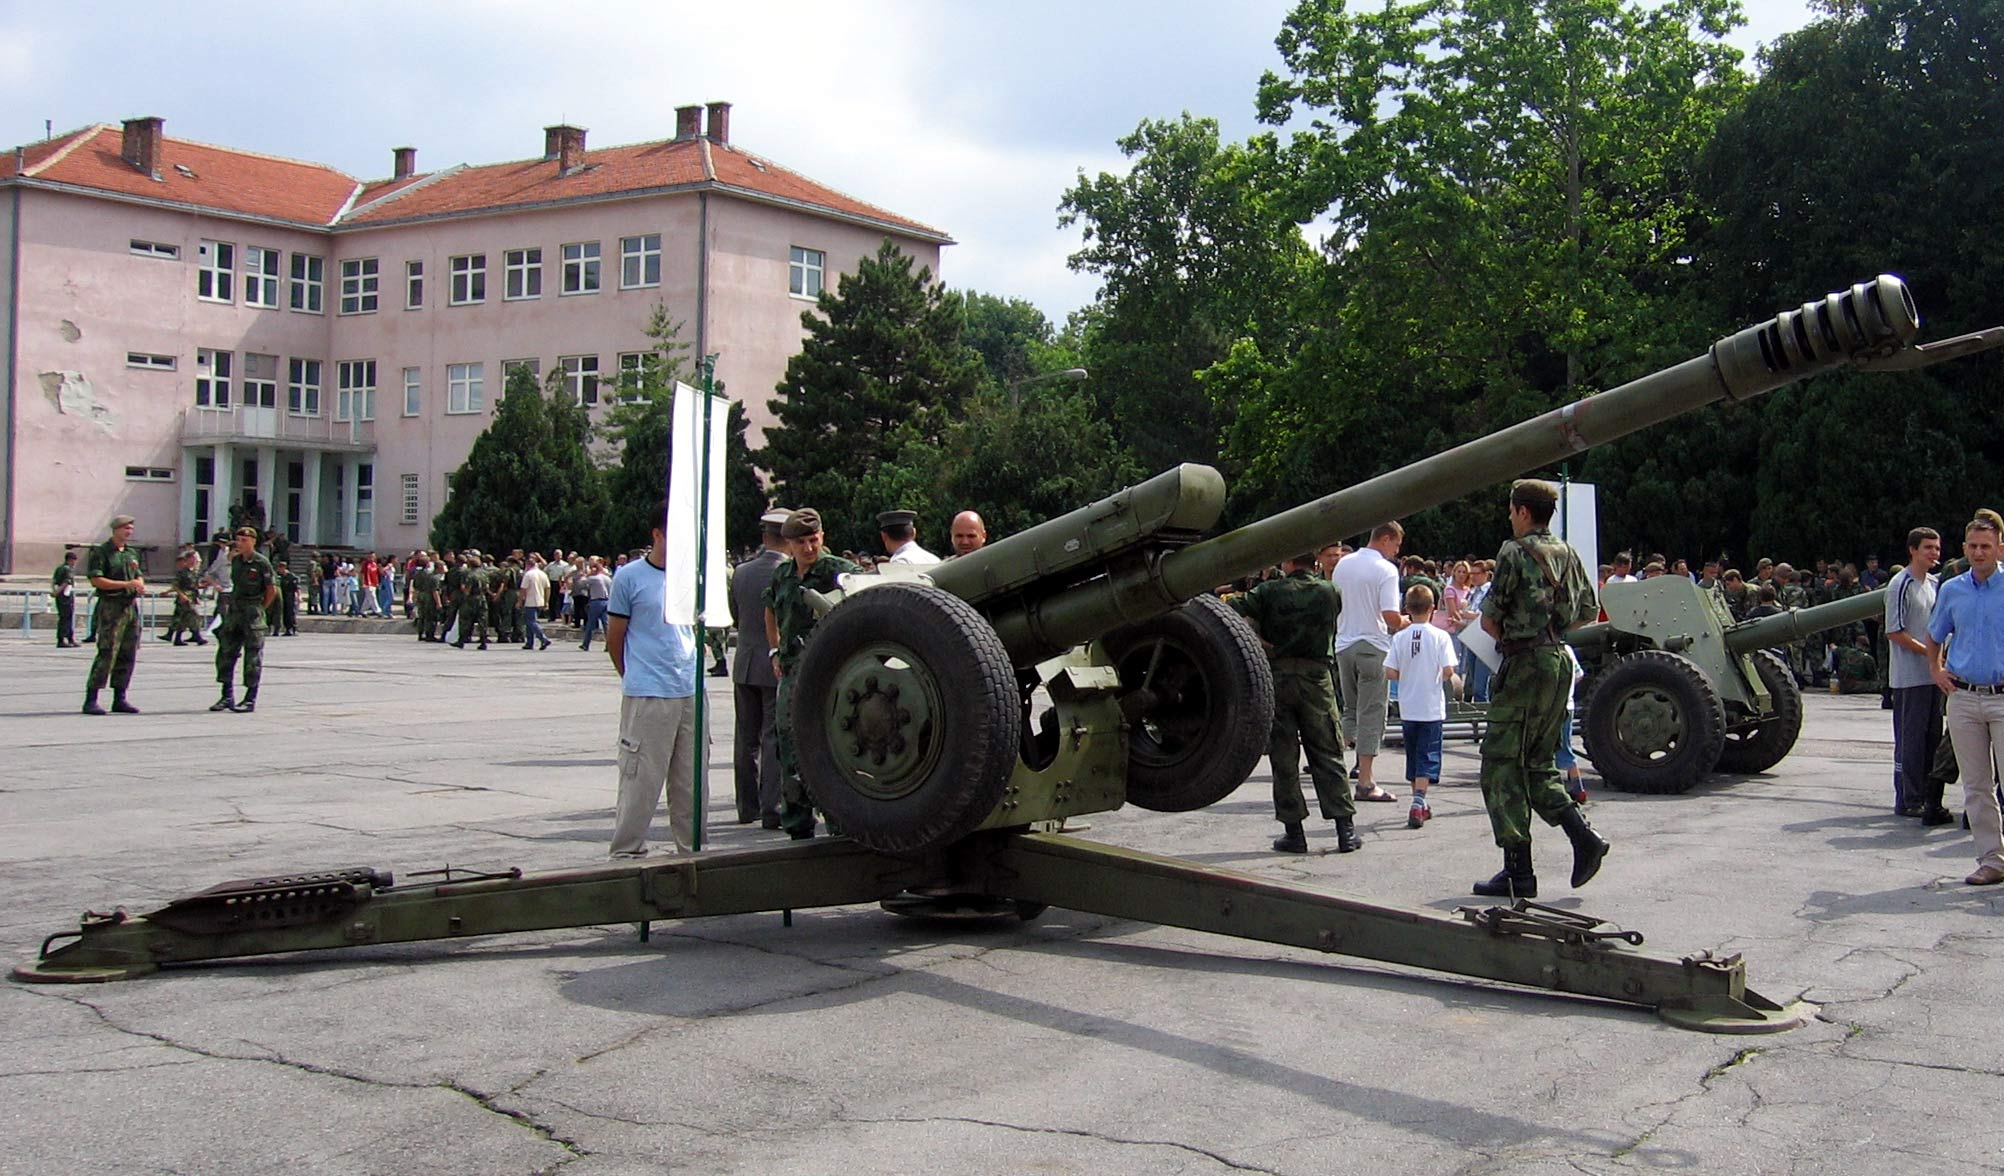 122 mm howitzer 2A18 (D-30) - Wikipedia